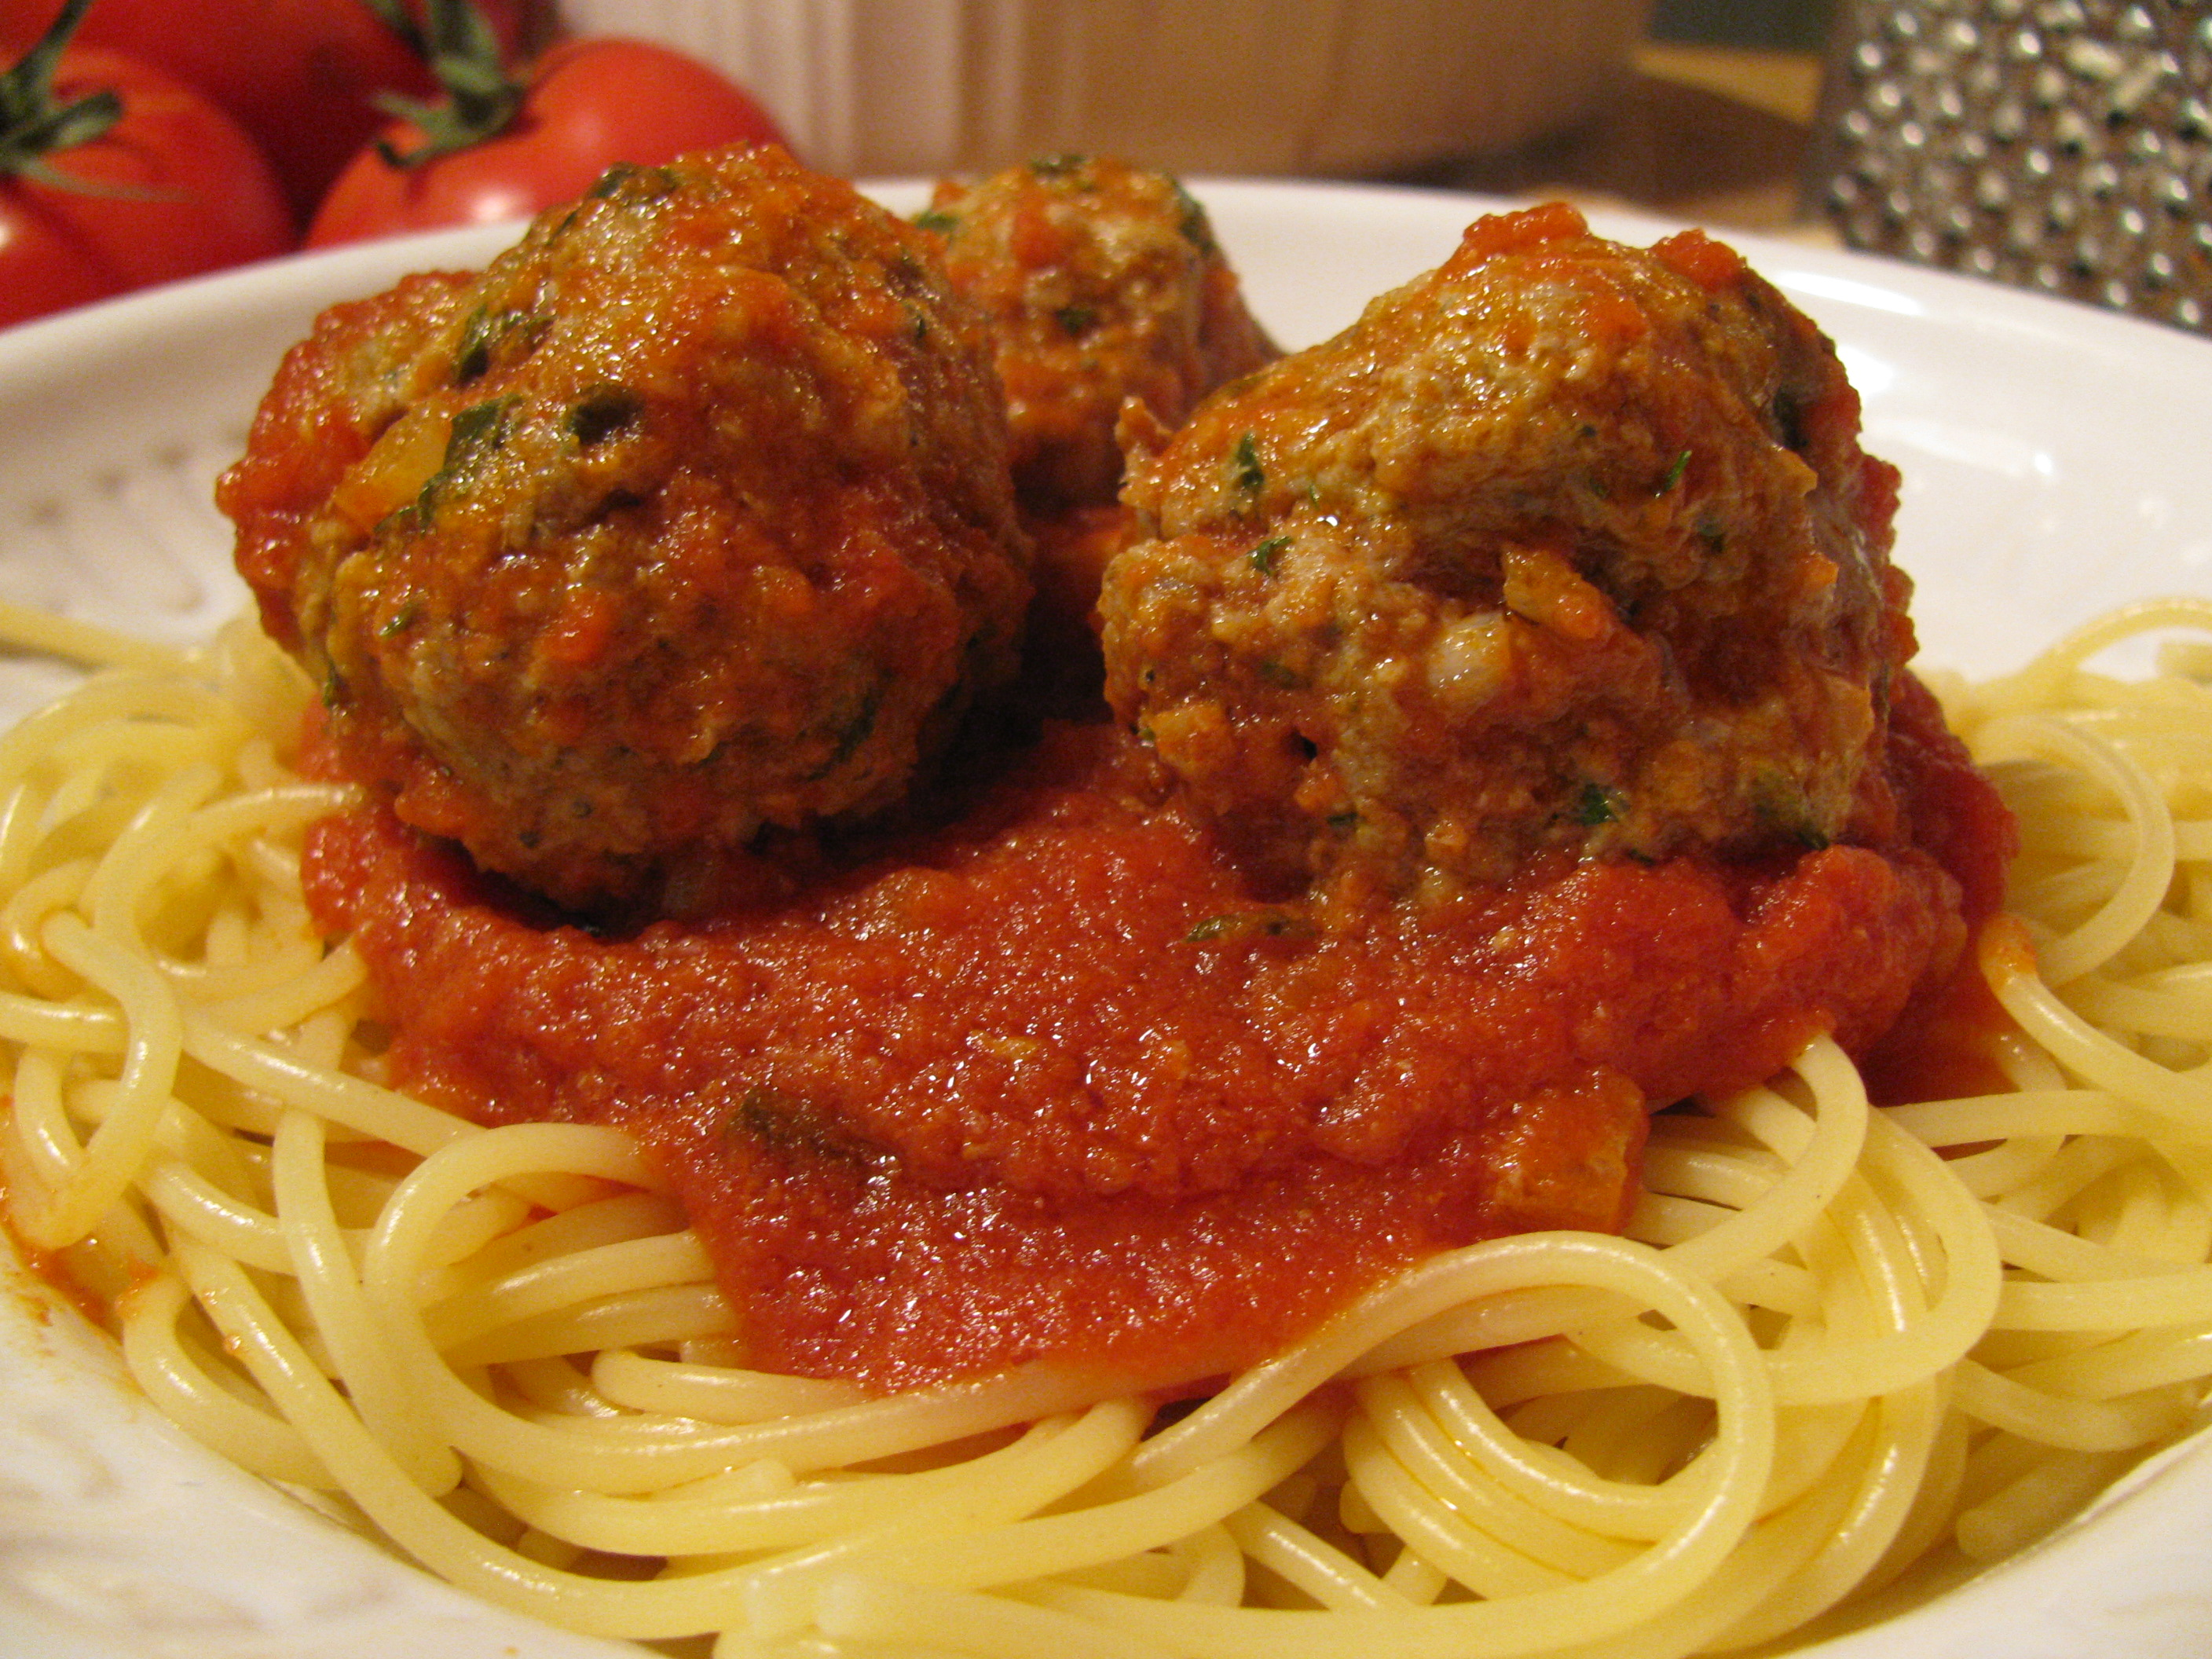 made spaghetti and meatballs this evening for dinner. The meatballs ...